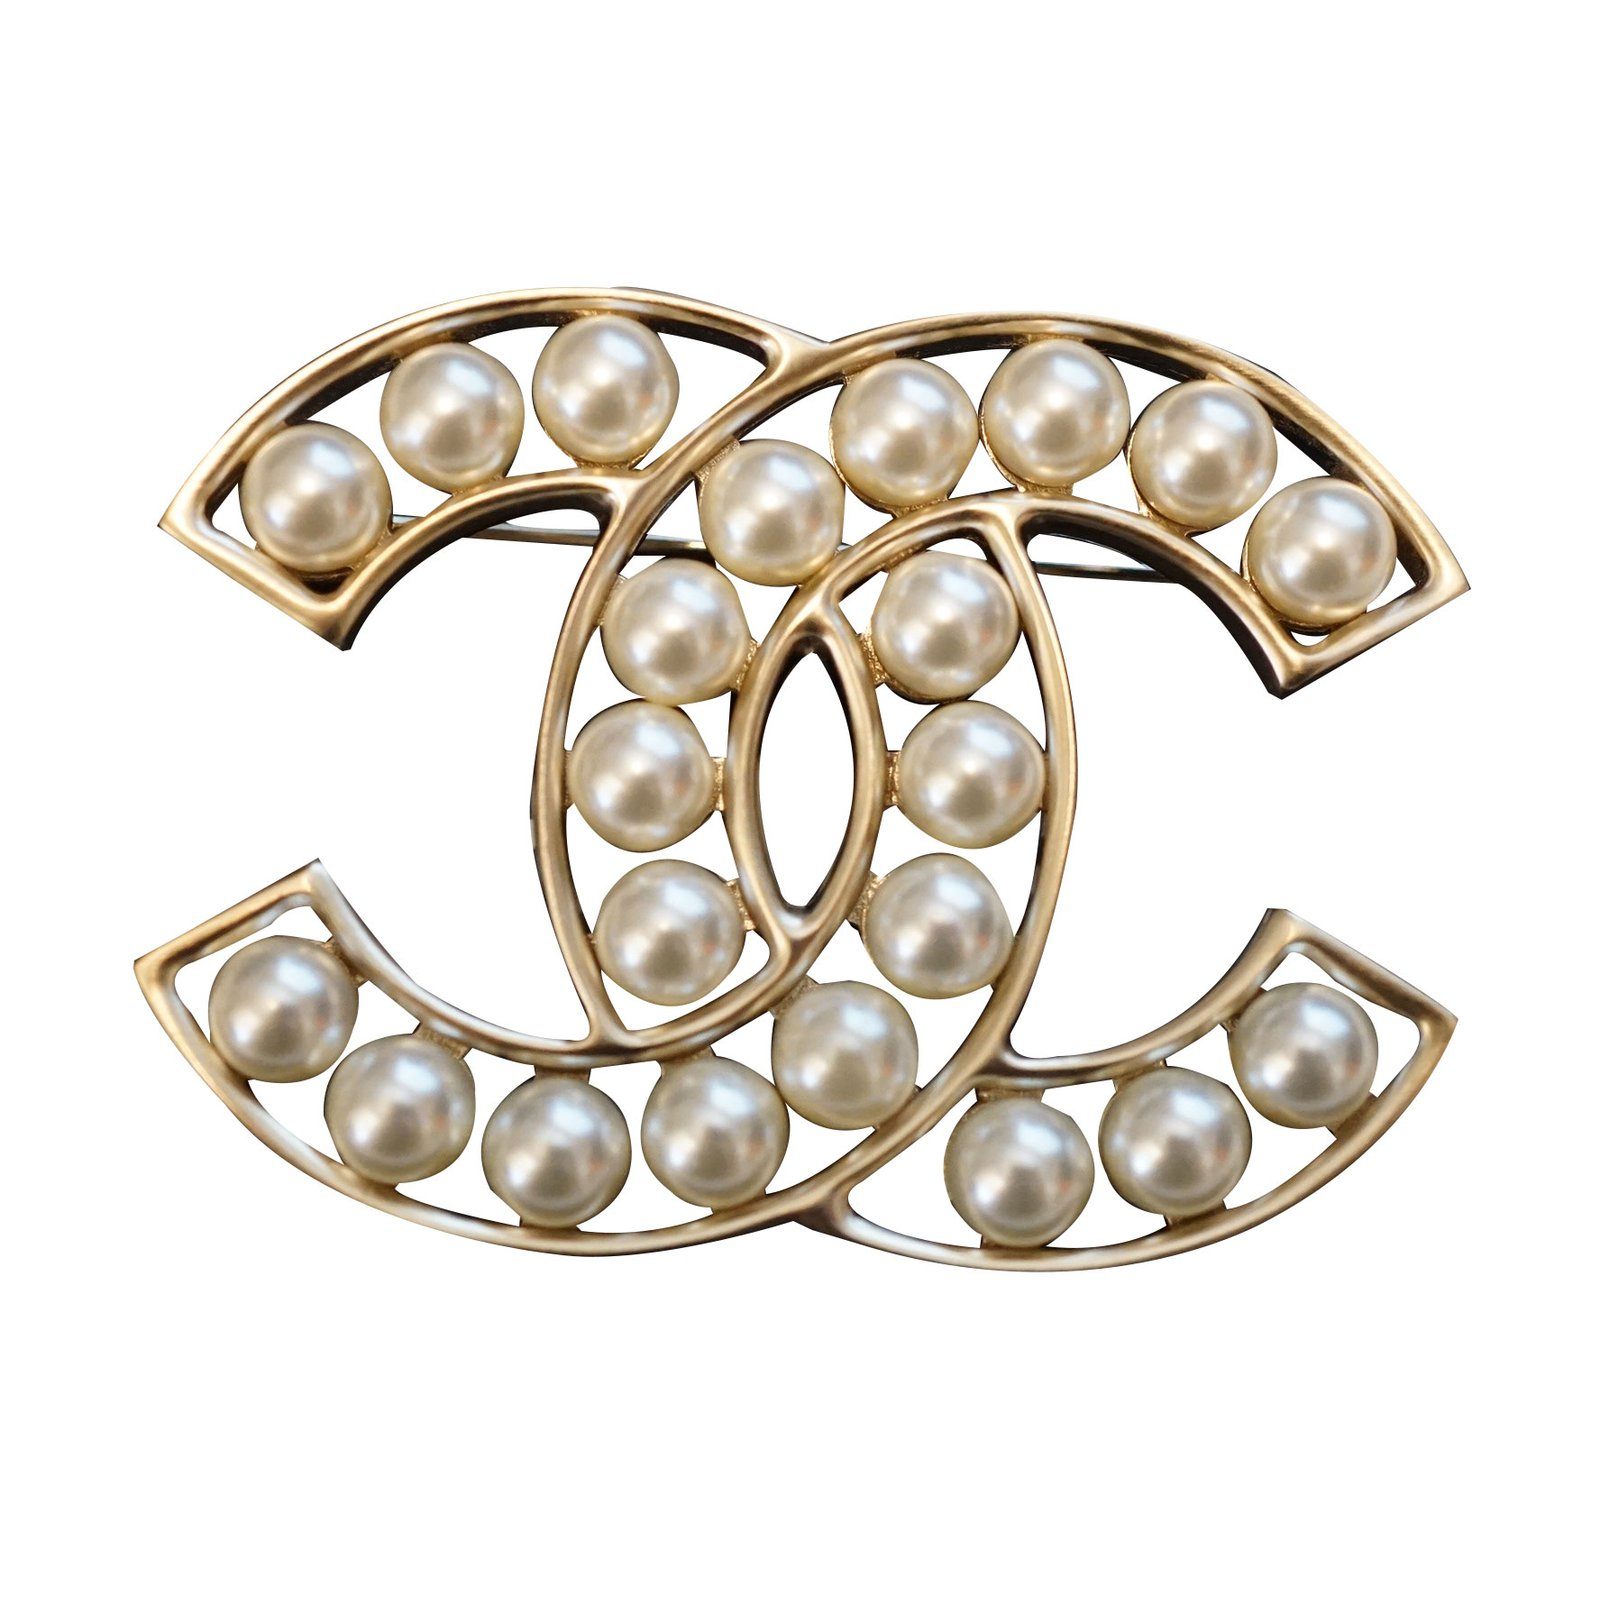 authentic gold brand brooch sold image new channel loading out pearl and is chanel itm s cc pin crystal